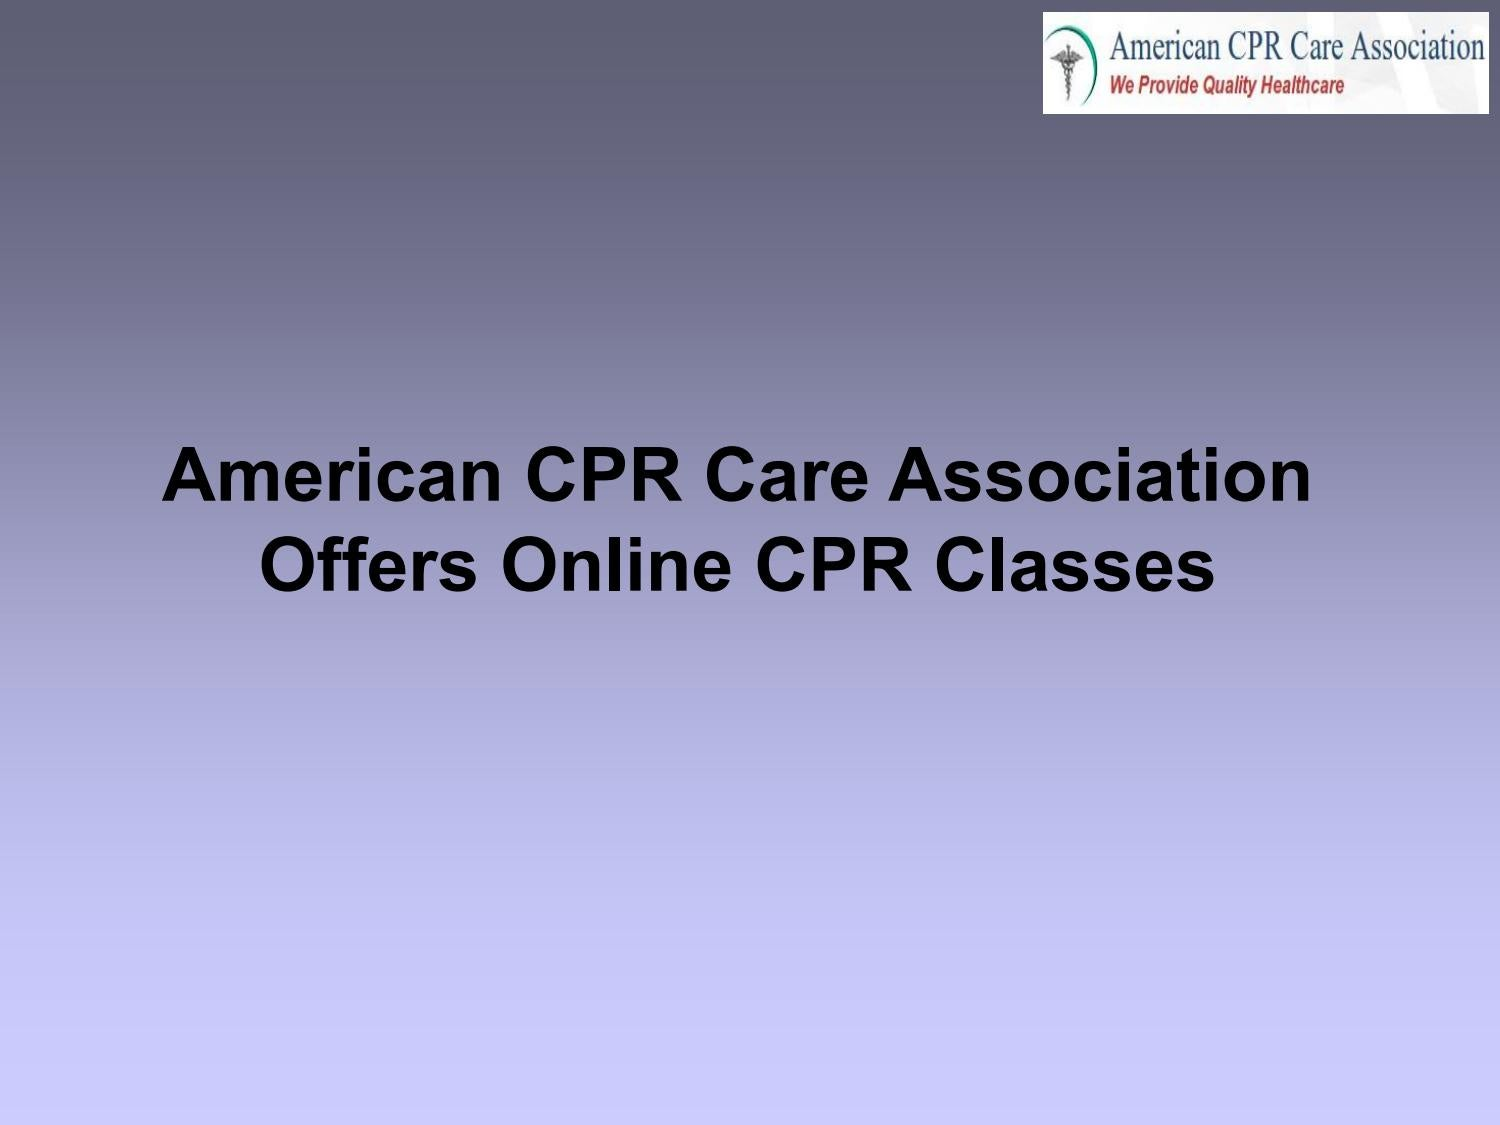 American Cpr Care Association Offers Online Cpr Classes By Cprcare